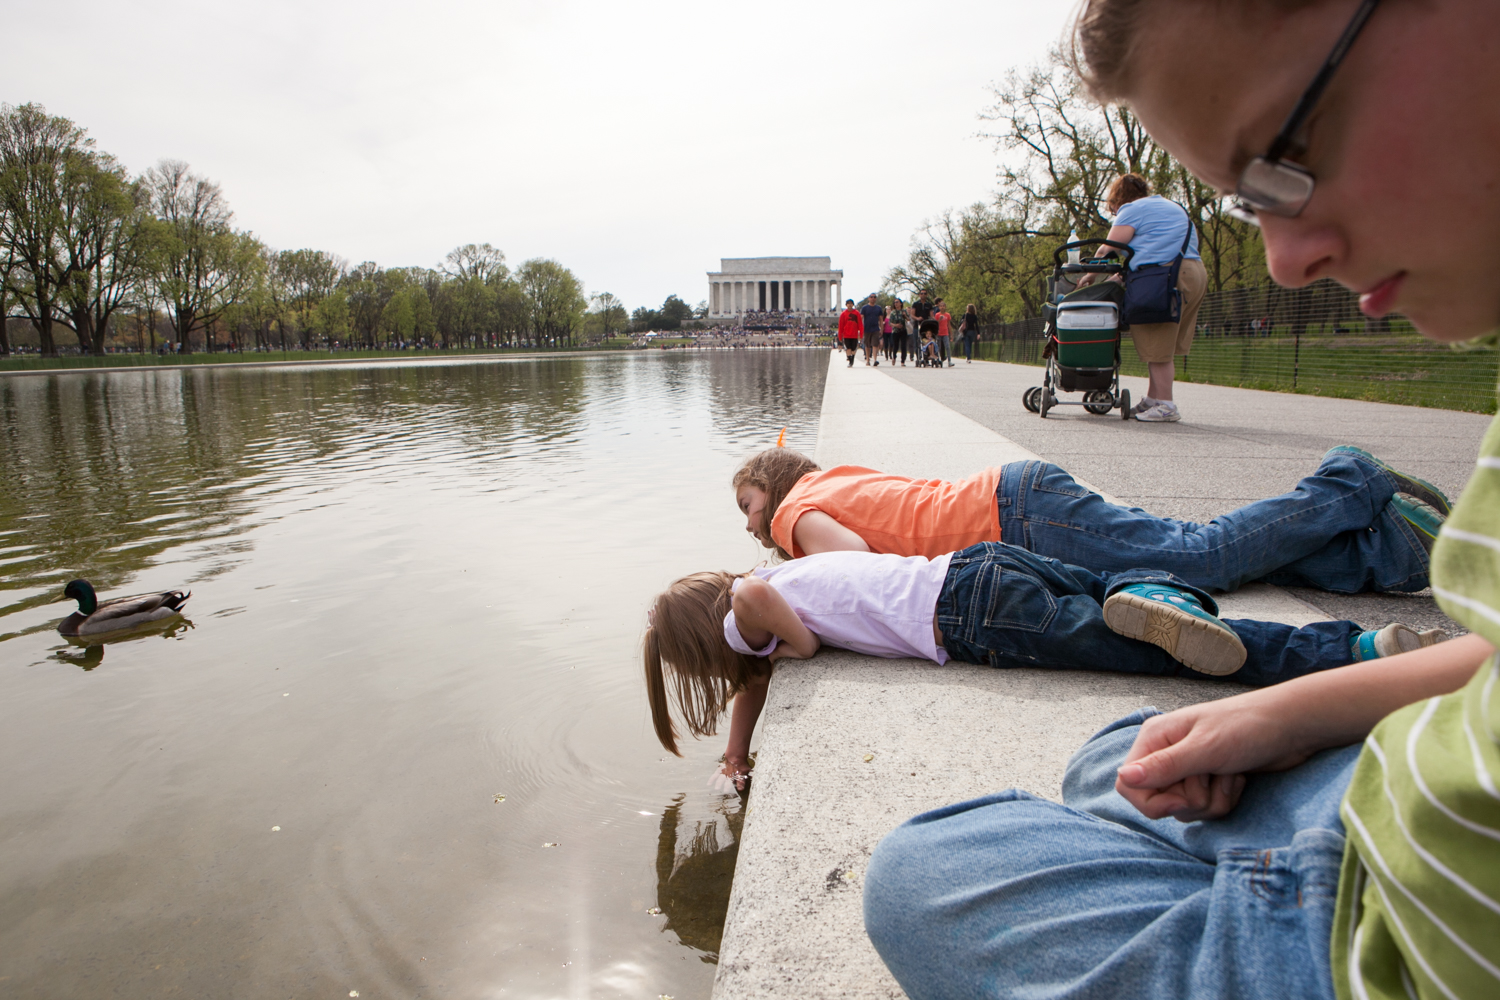 Playing in the Lincoln Memorial Reflecting Pool